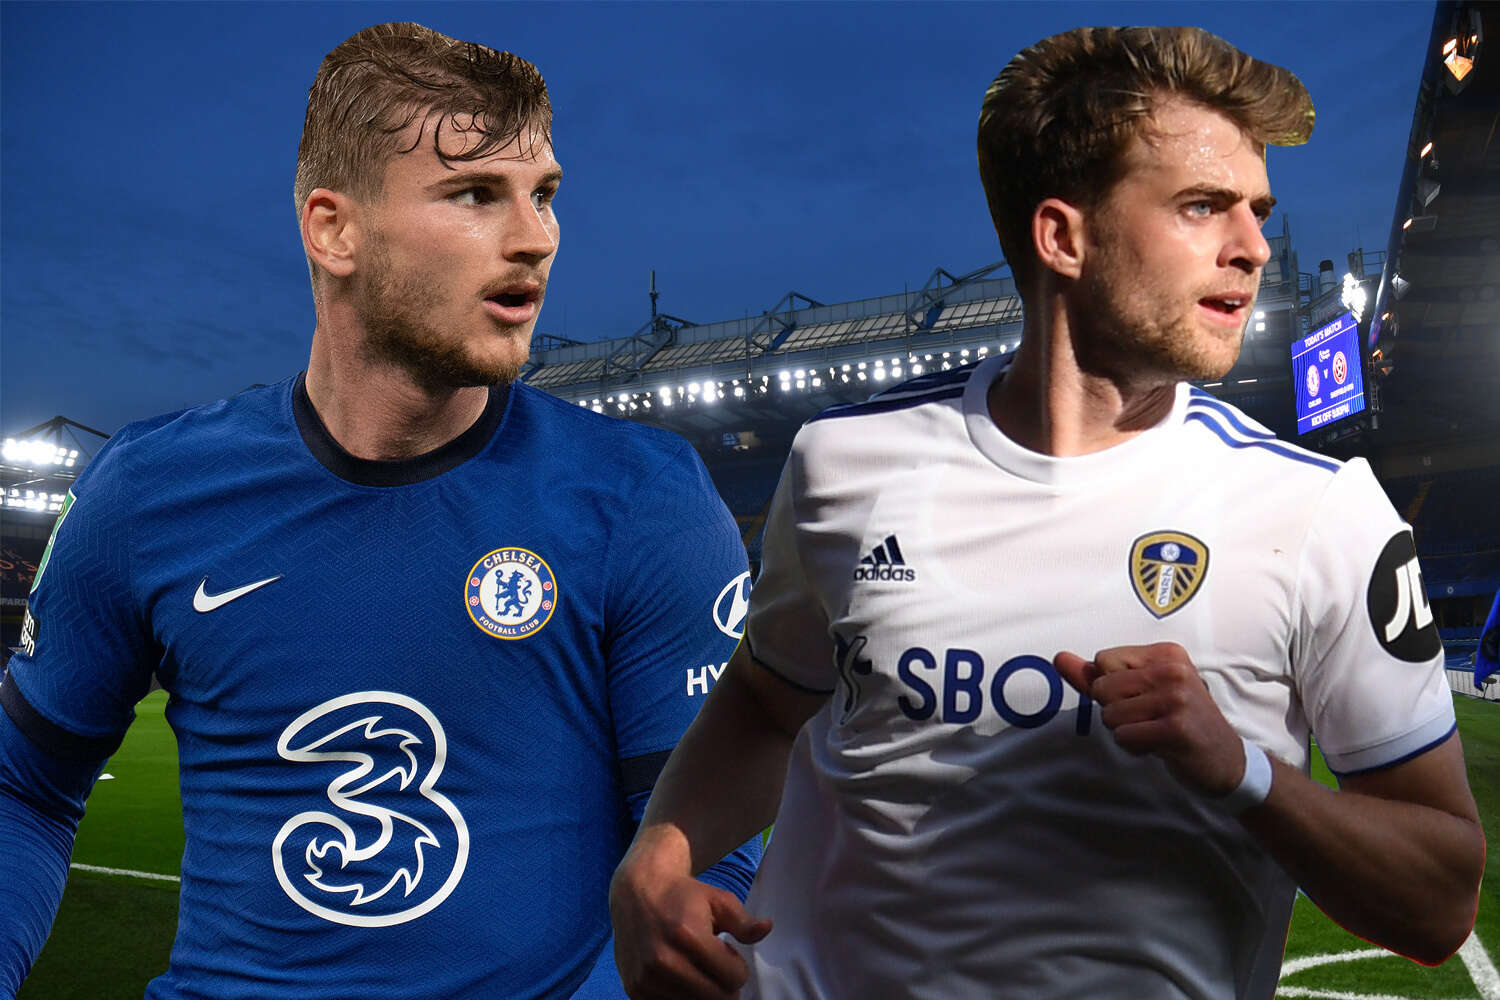 Premier League Matchday: In-form Chelsea welcomes limited spectators as they play Leeds United